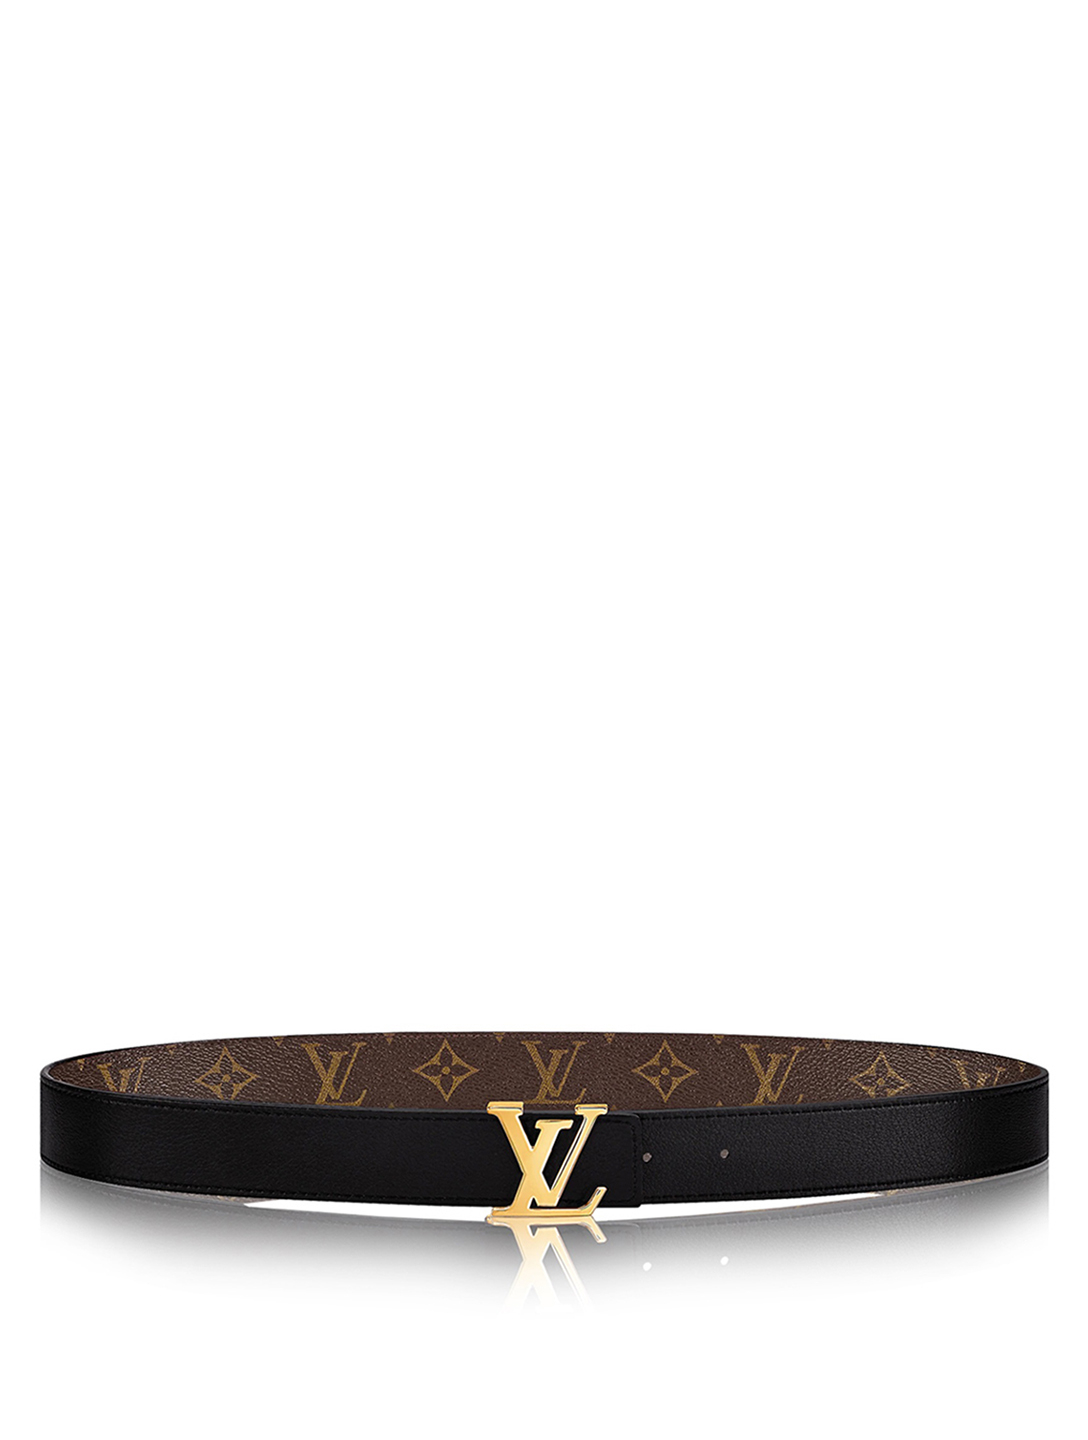 LOUIS VUITTON LV Initiales 30MM Reversible Belt Designers